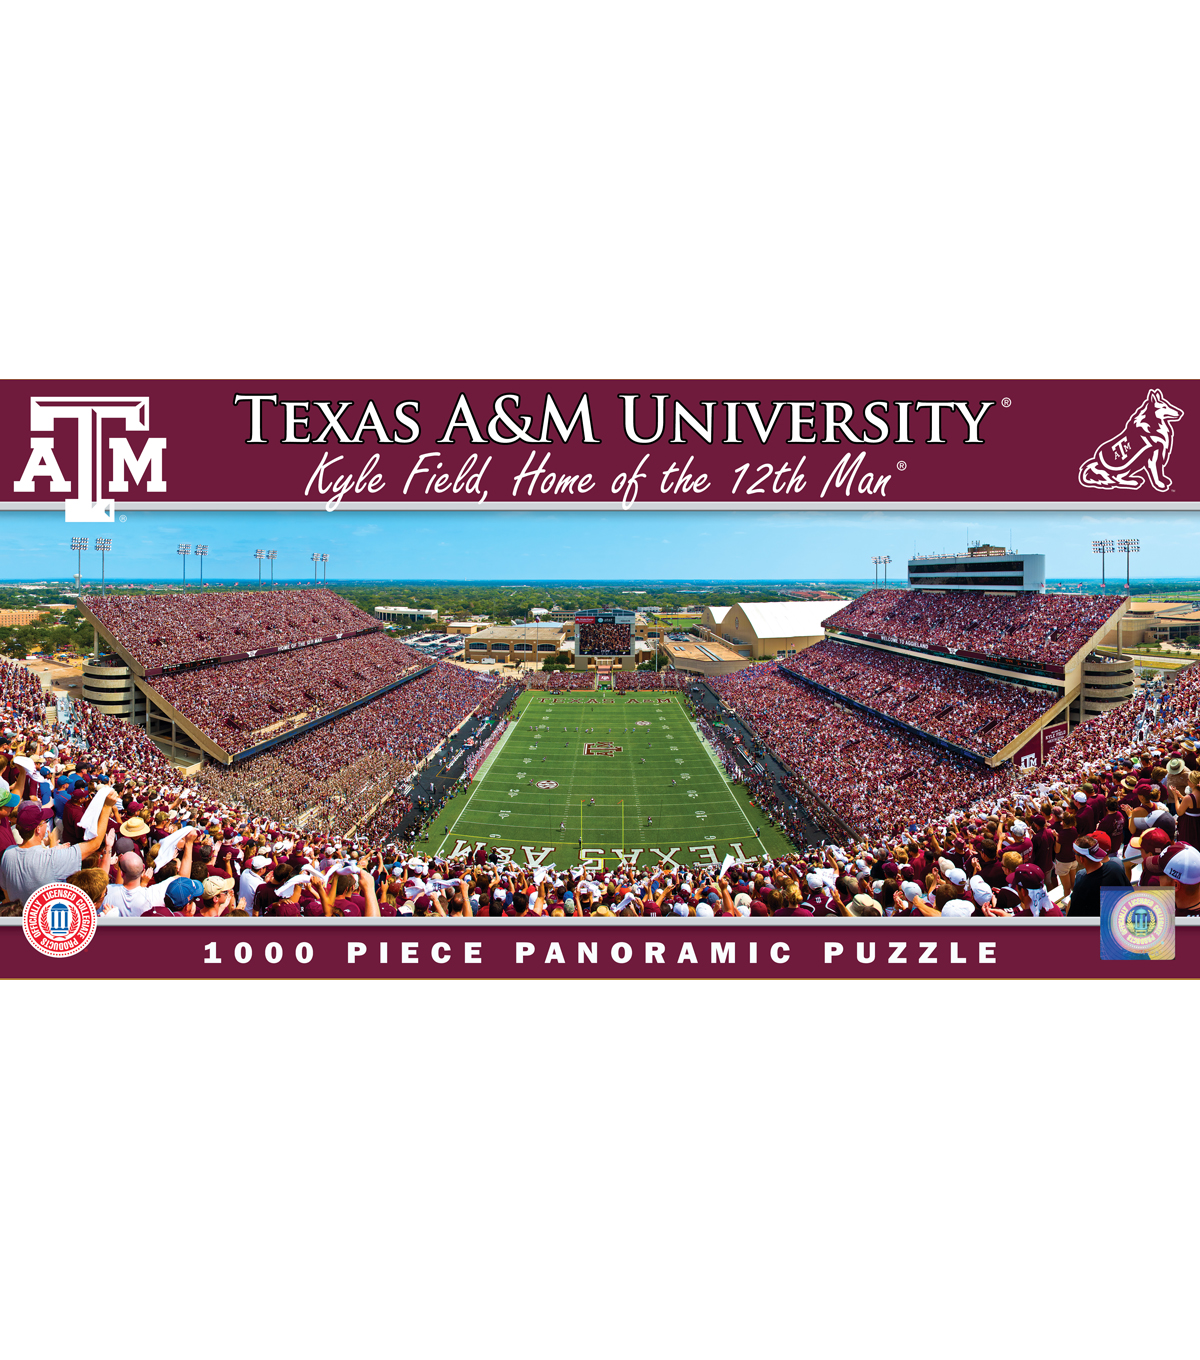 Texas A&M University Master Pieces Panoramic Puzzle